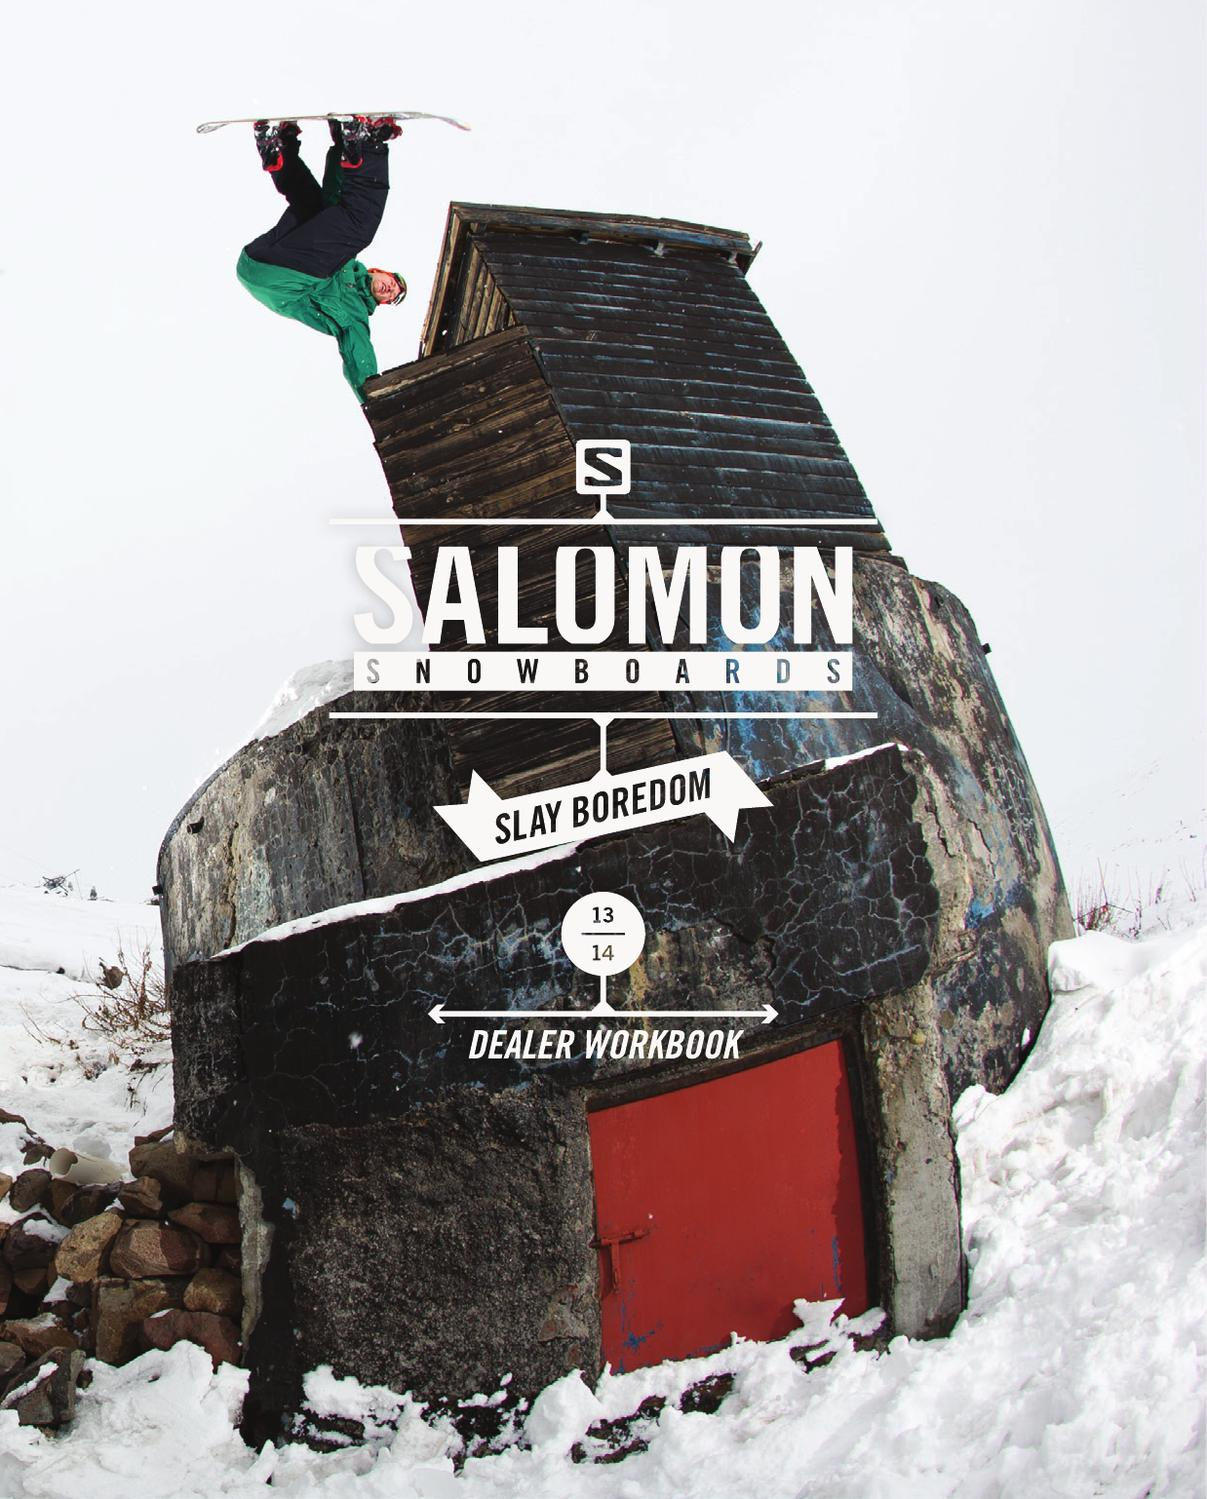 SALOMON SNOWBOARD 20132014 by Salomon issuu